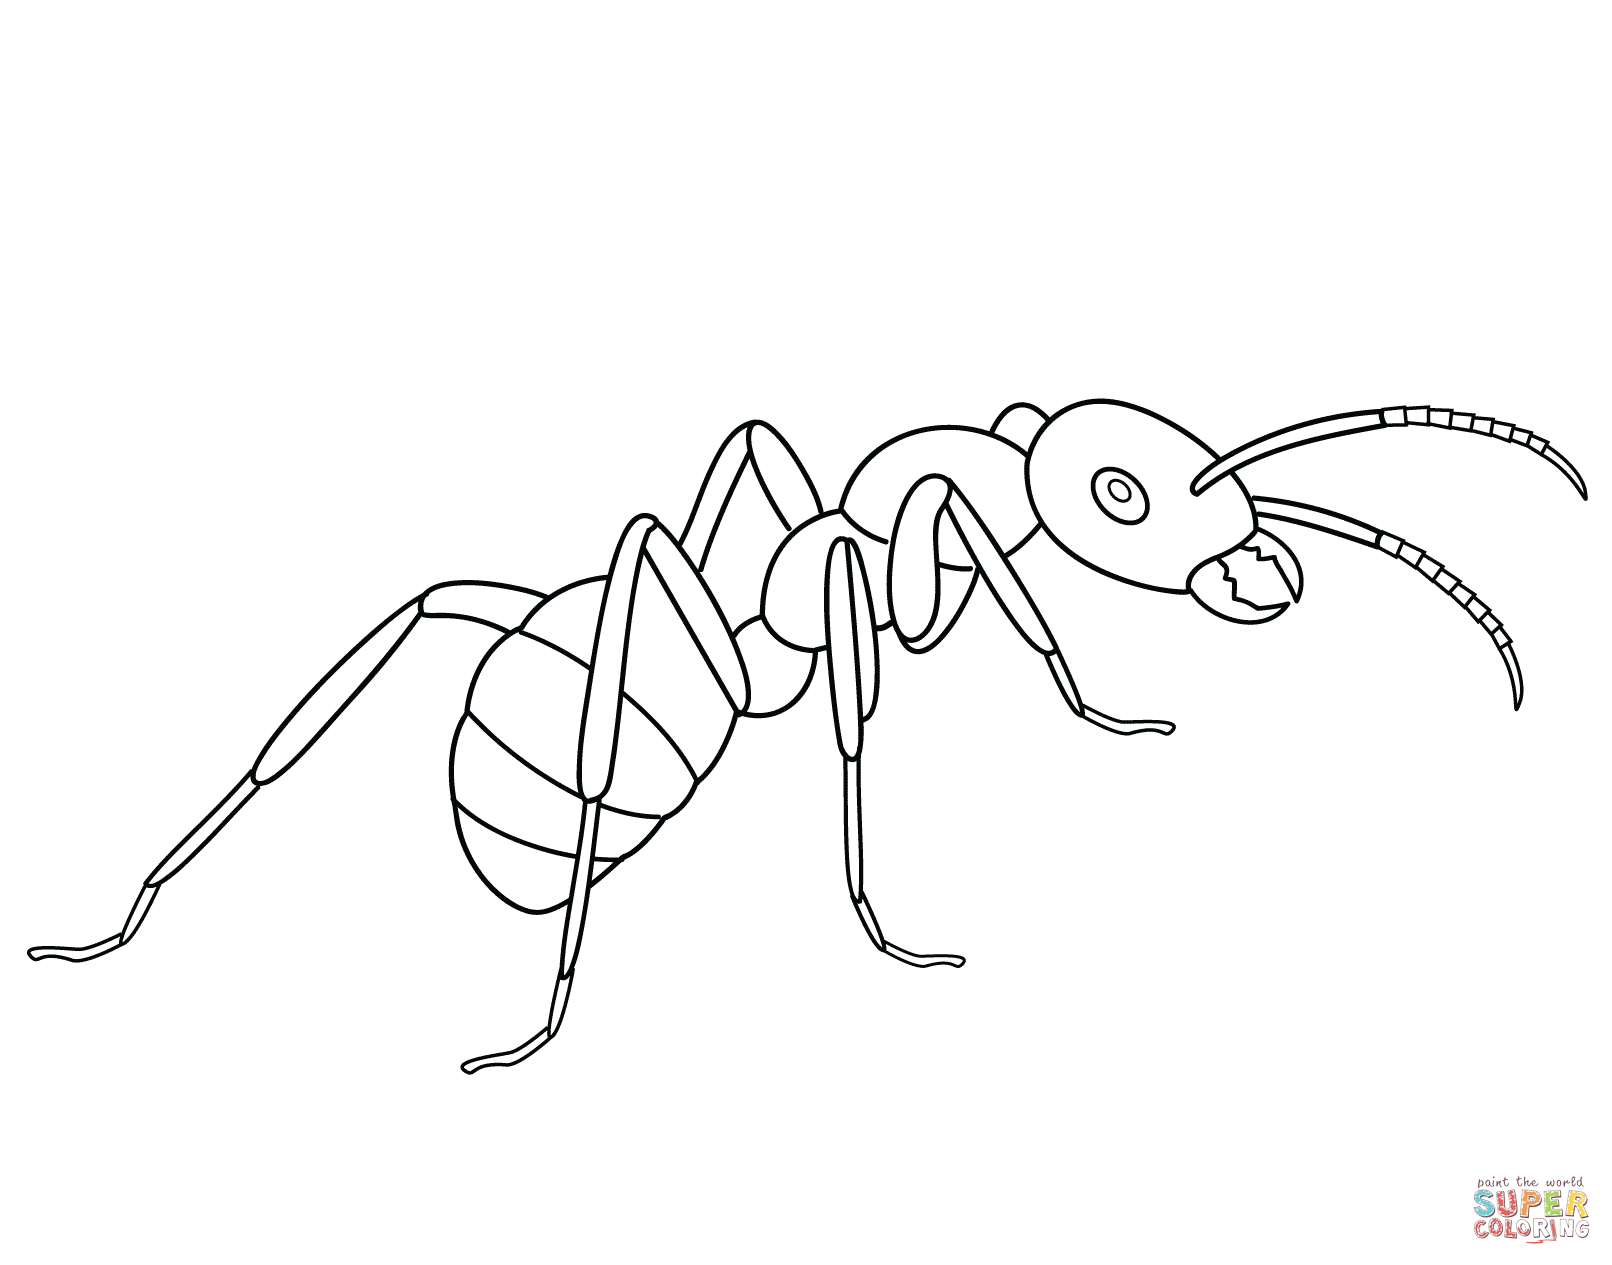 Ants coloring pages.